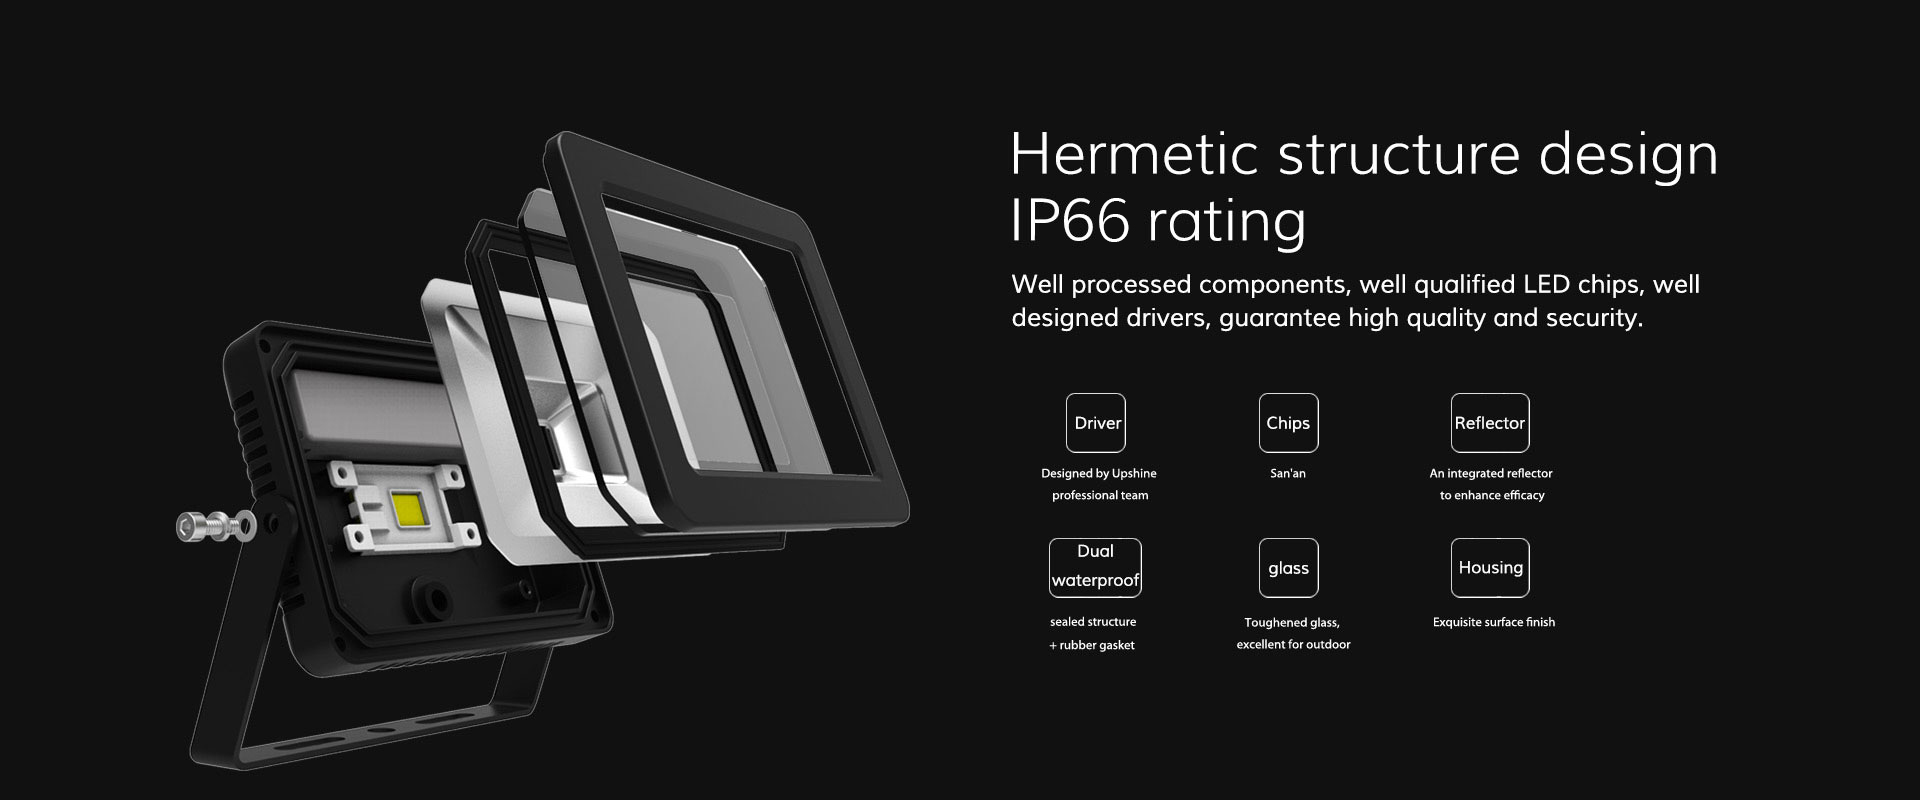 HiCover Ⅲ Hermetic structure design IP65 rating